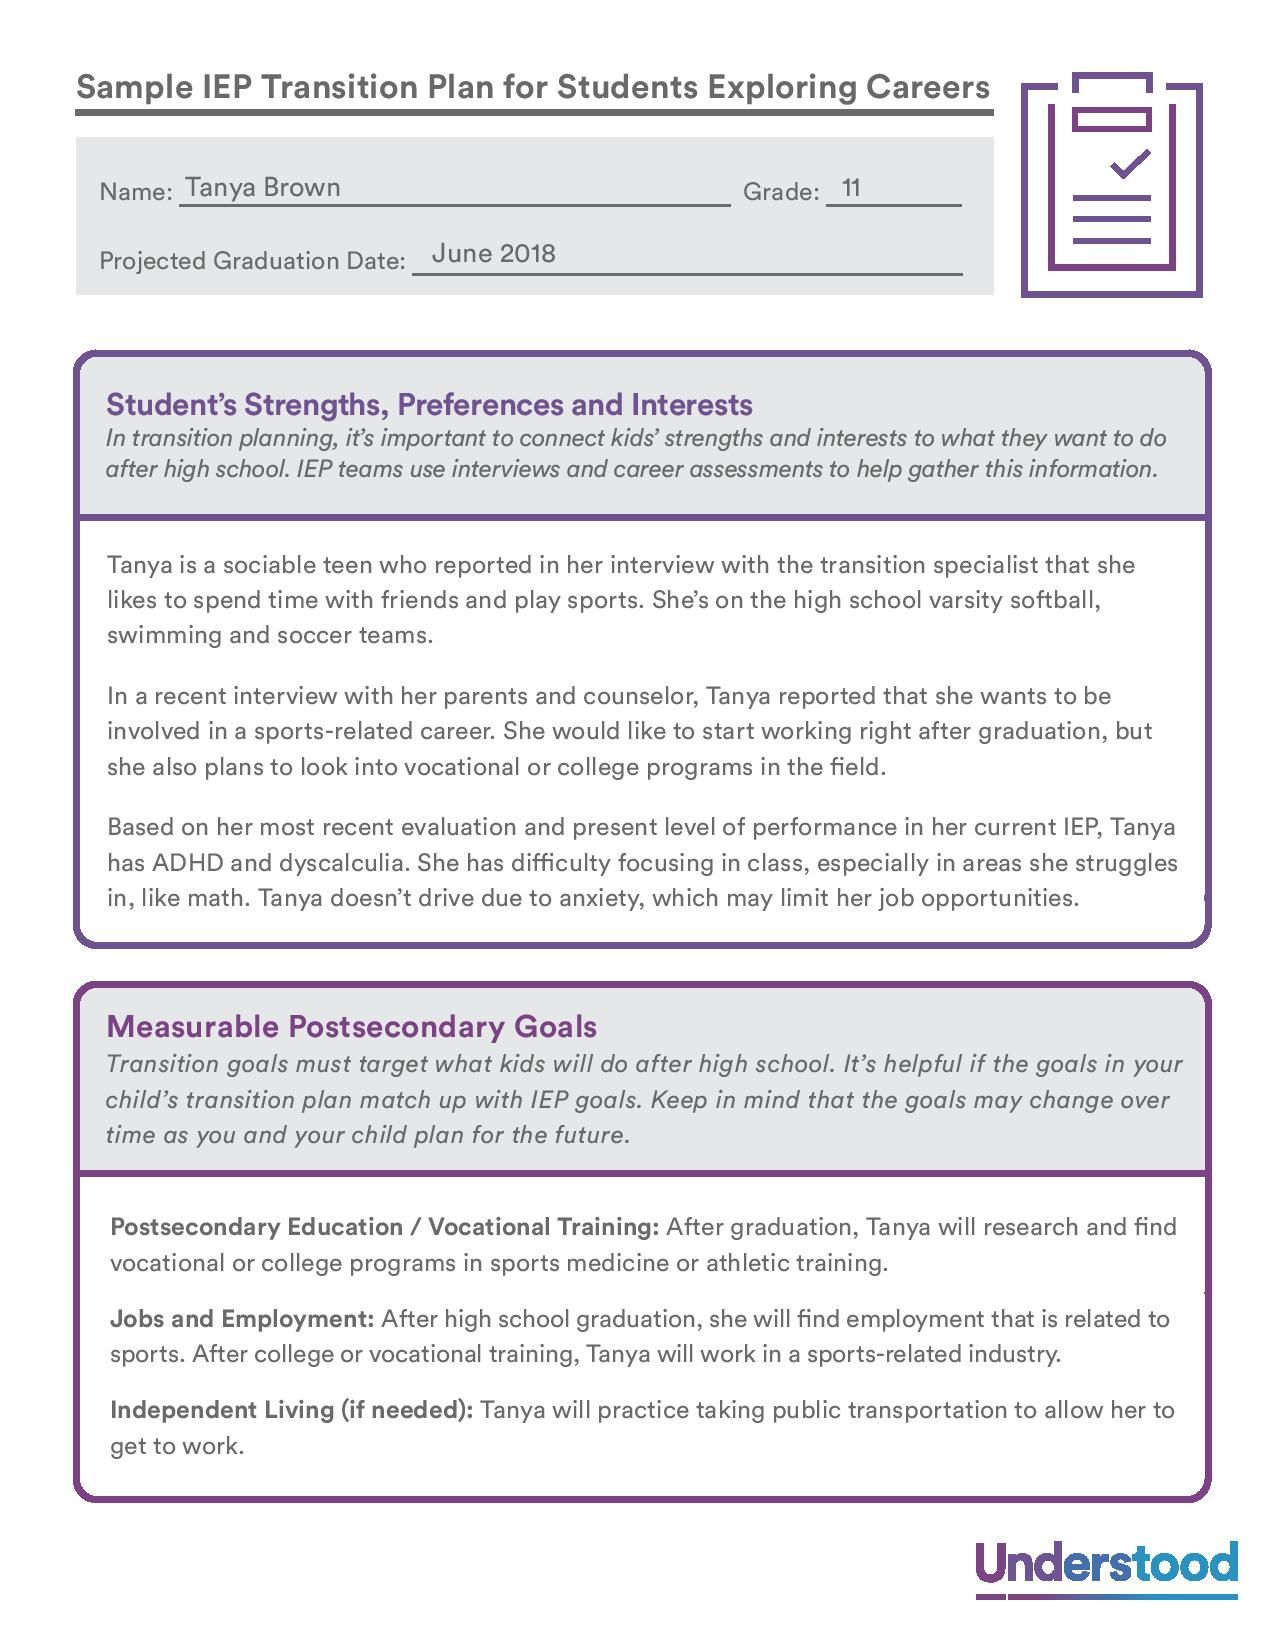 Sample Iep Transition Plan For Students Exploring Careers